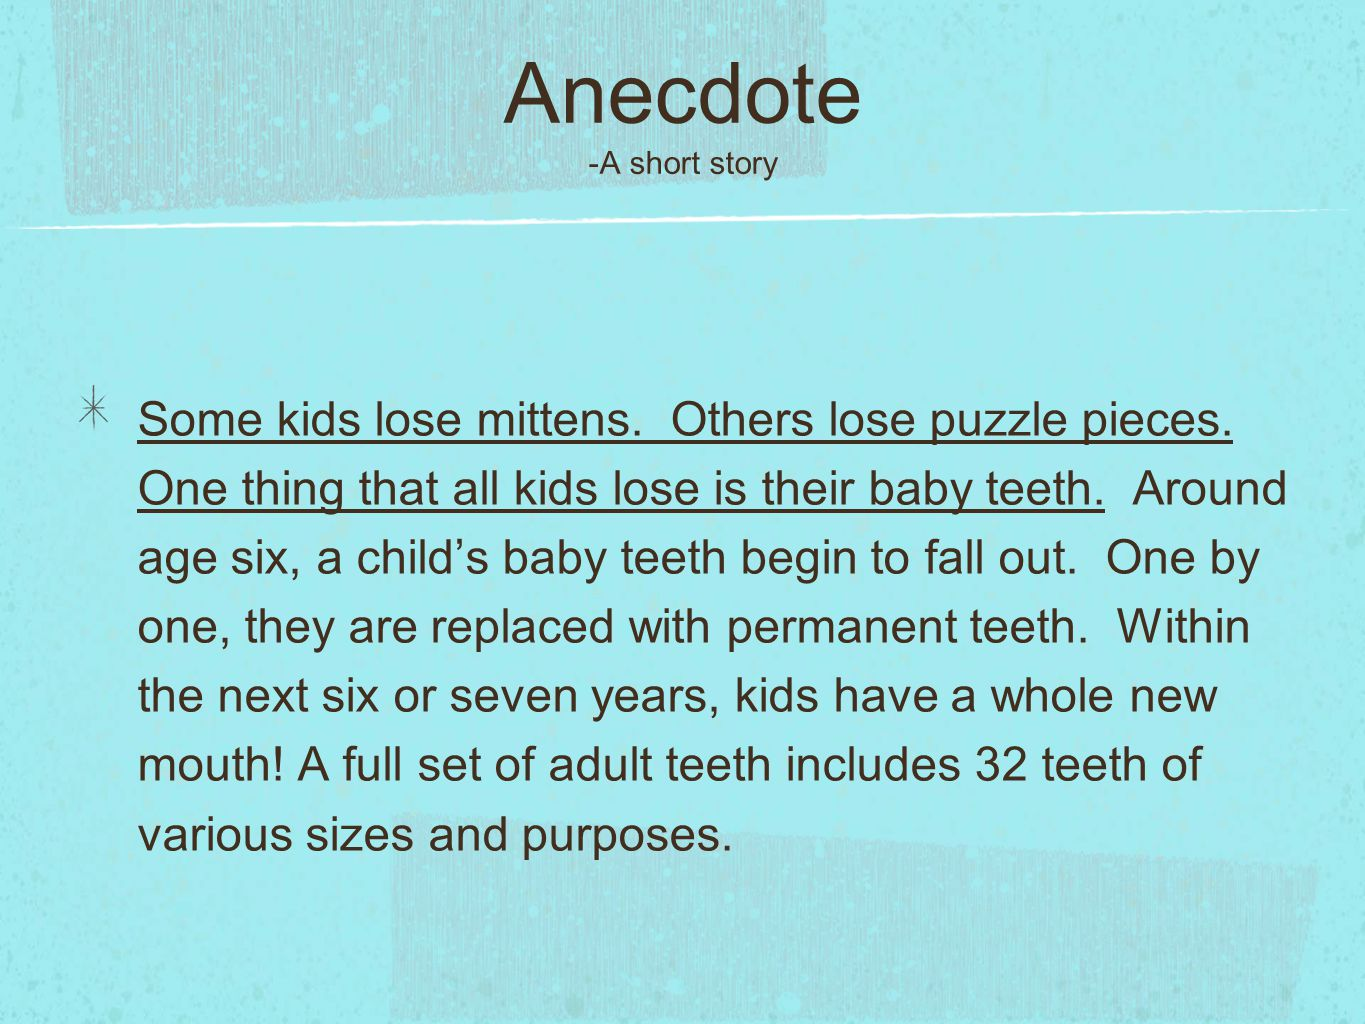 Anecdote -A short story Some kids lose mittens. Others lose puzzle pieces. One thing that all kids lose is their baby teeth. Around age six, a child's